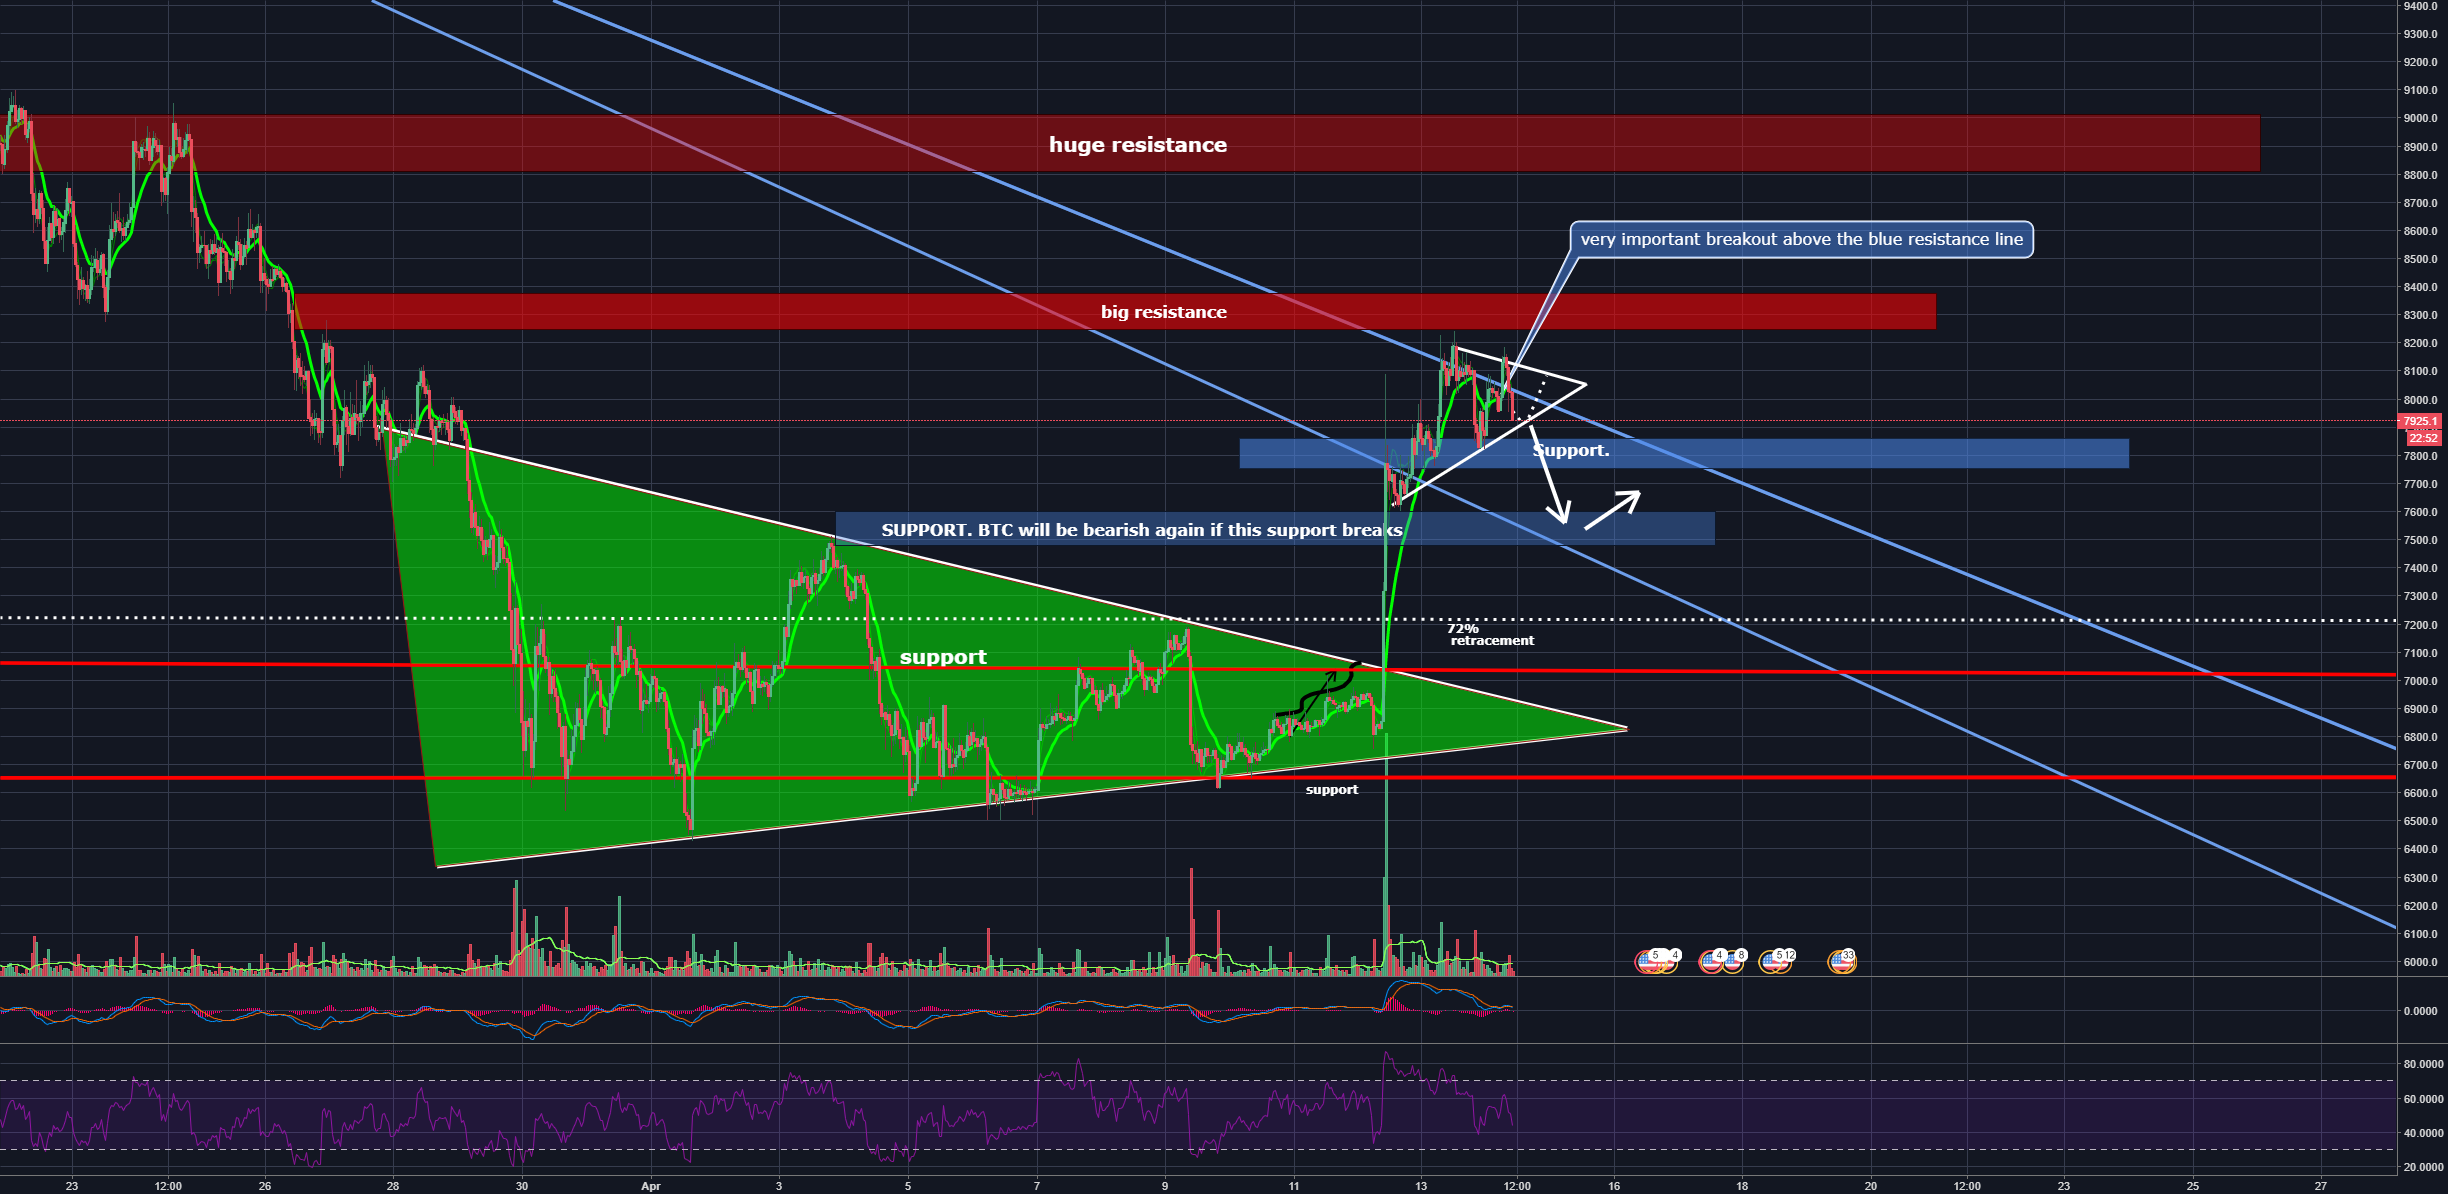 BTC, it looks like you became bullish. But for how long?